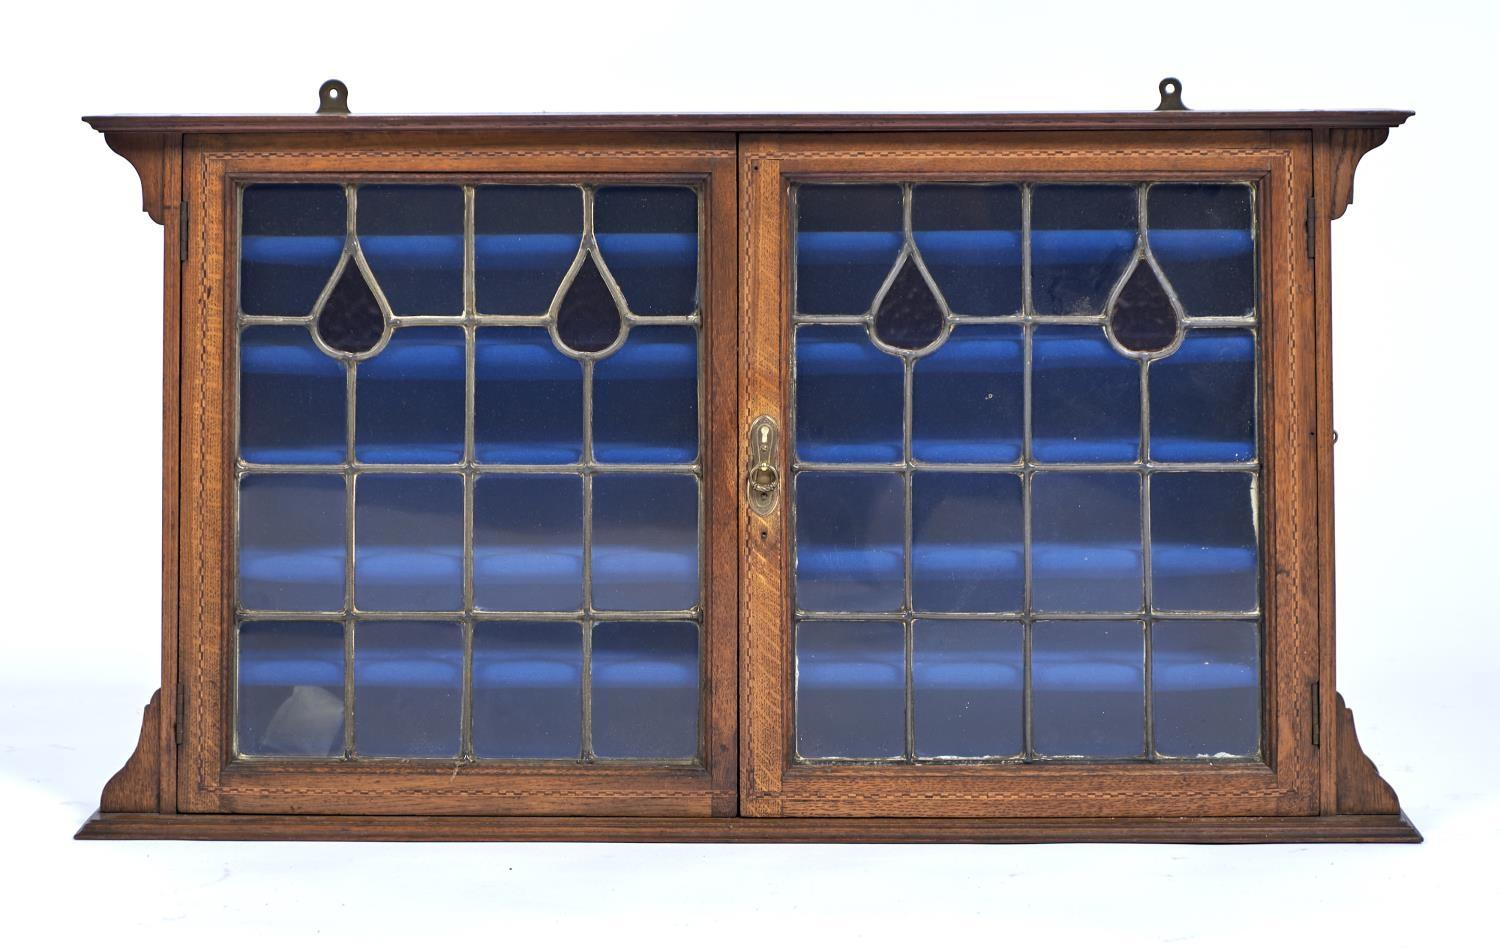 AN OAK ARTS AND CRAFTS WALL CABINET, C1890, THE PROJECTING CORNICE ABOVE A PAIR OF DOORS PARQUETRY